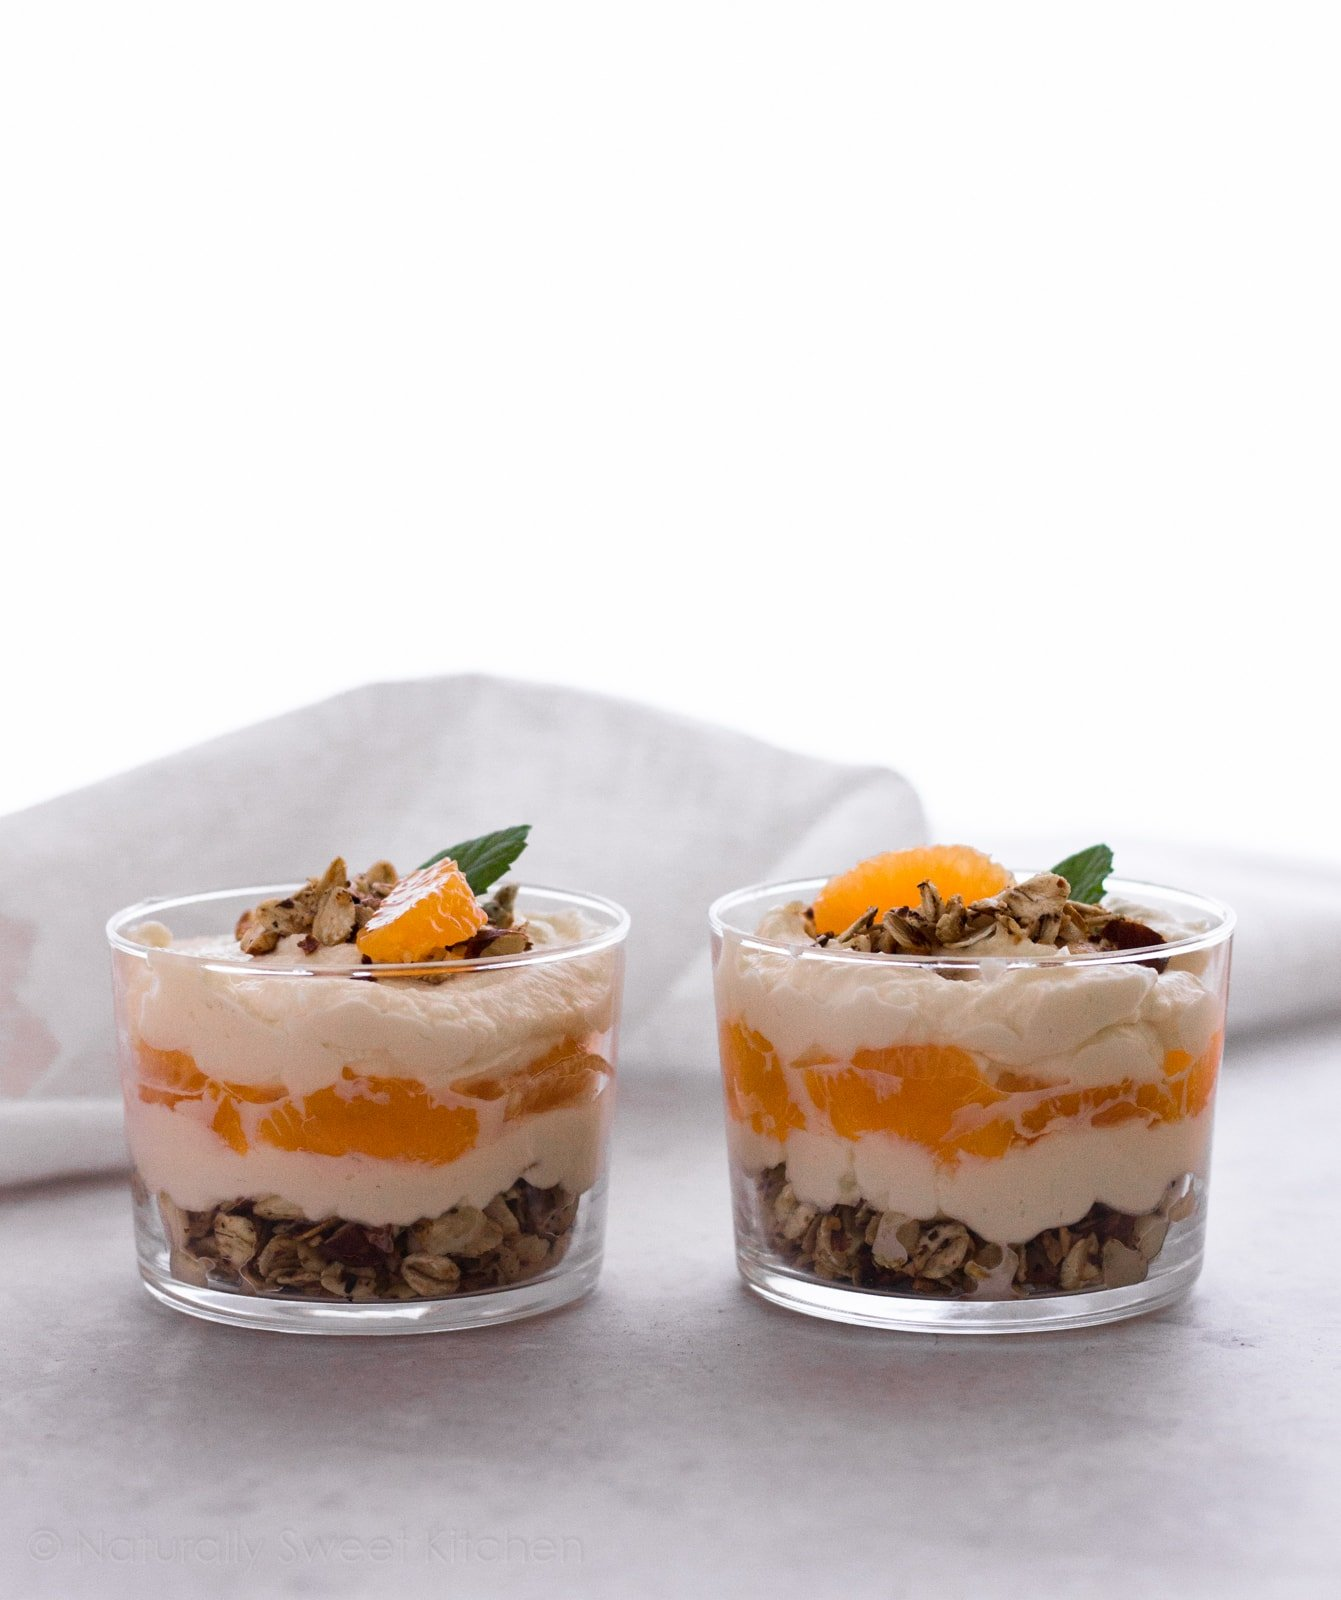 A natural, whole foods twist on a childhood classic, these light and decadent Orange Creamsicle Parfaits are ready in minutes. A perfect quick and easy summer dessert. | Naturally Sweet Kitchen | Summer Dessert | Quick and Easy Dessert | Orange Parfait #dessertrecipe #orangecreamsicle